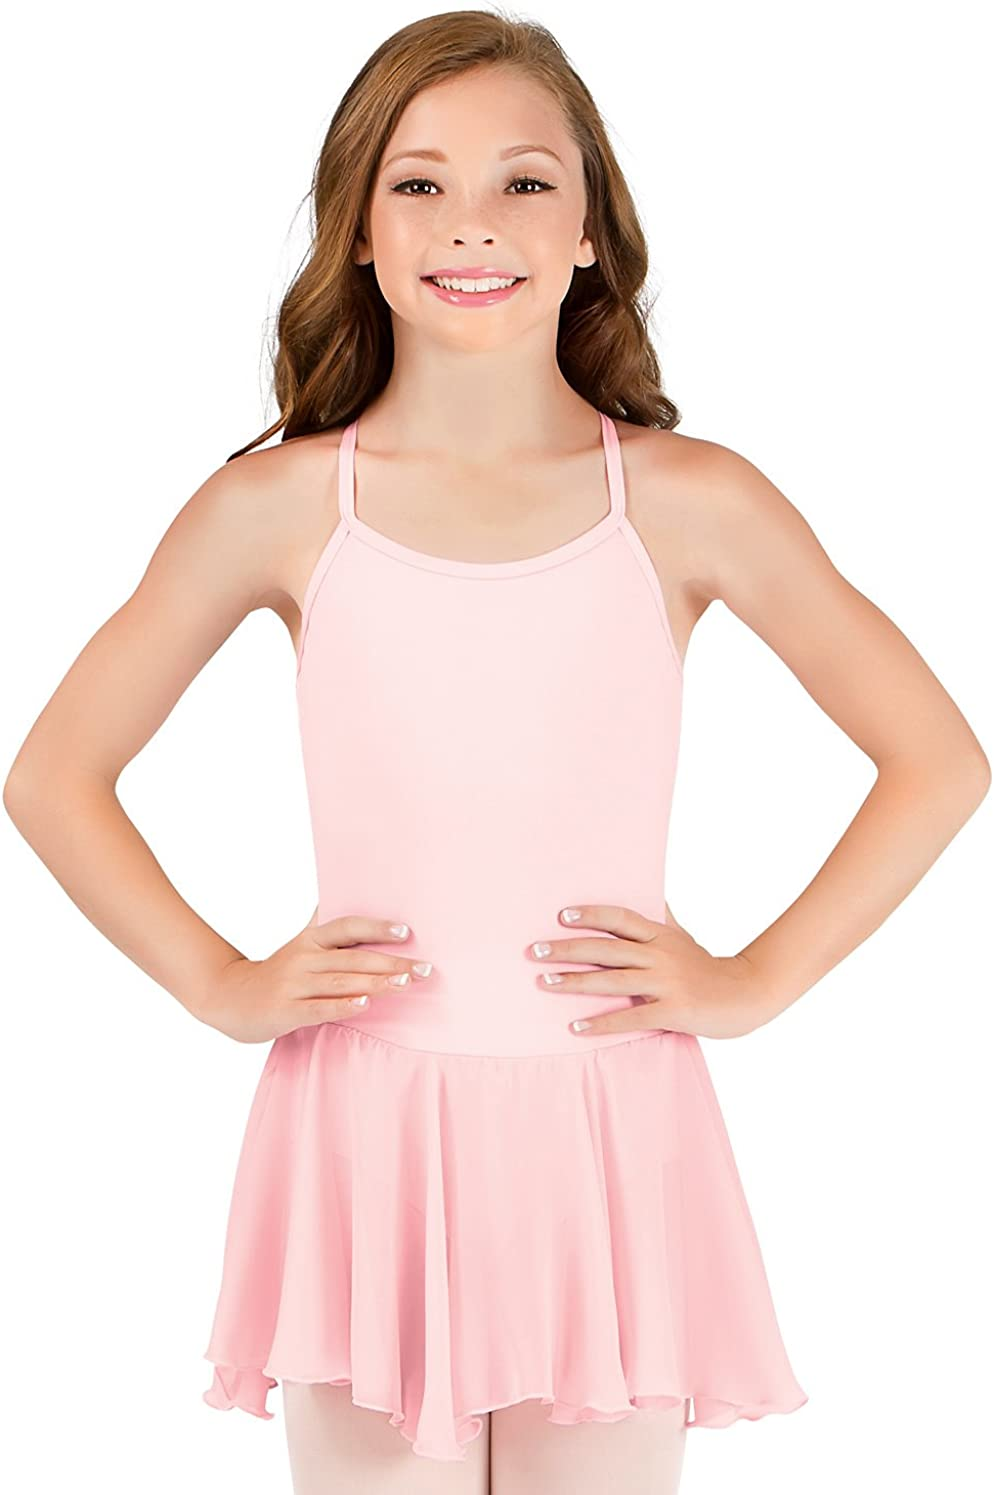 Body Wrappers New color Camisole High quality new Leotard